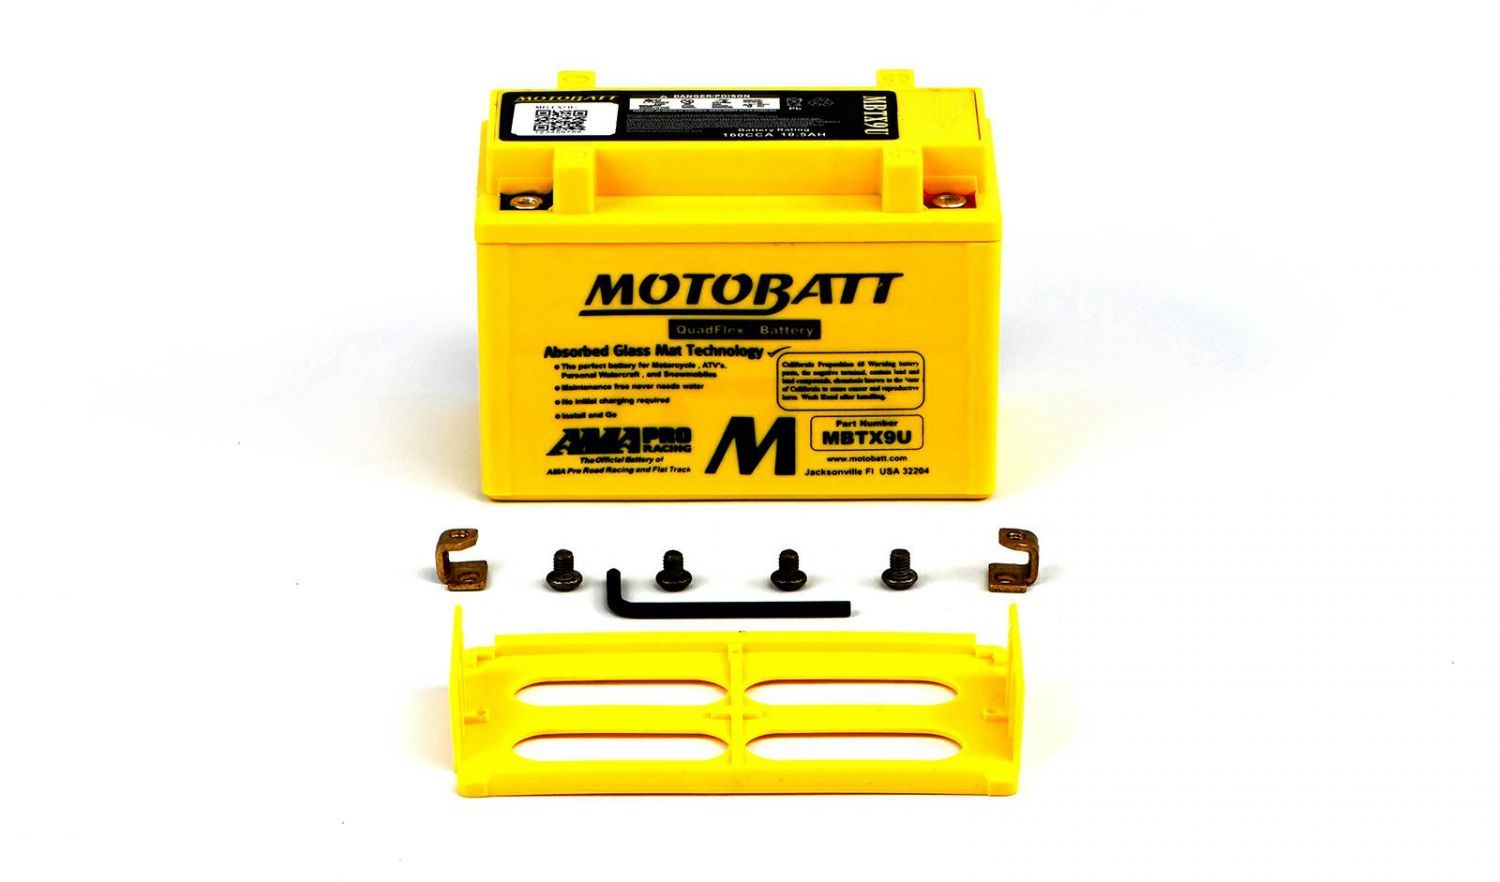 Motobatt Batteries - 501095MY image